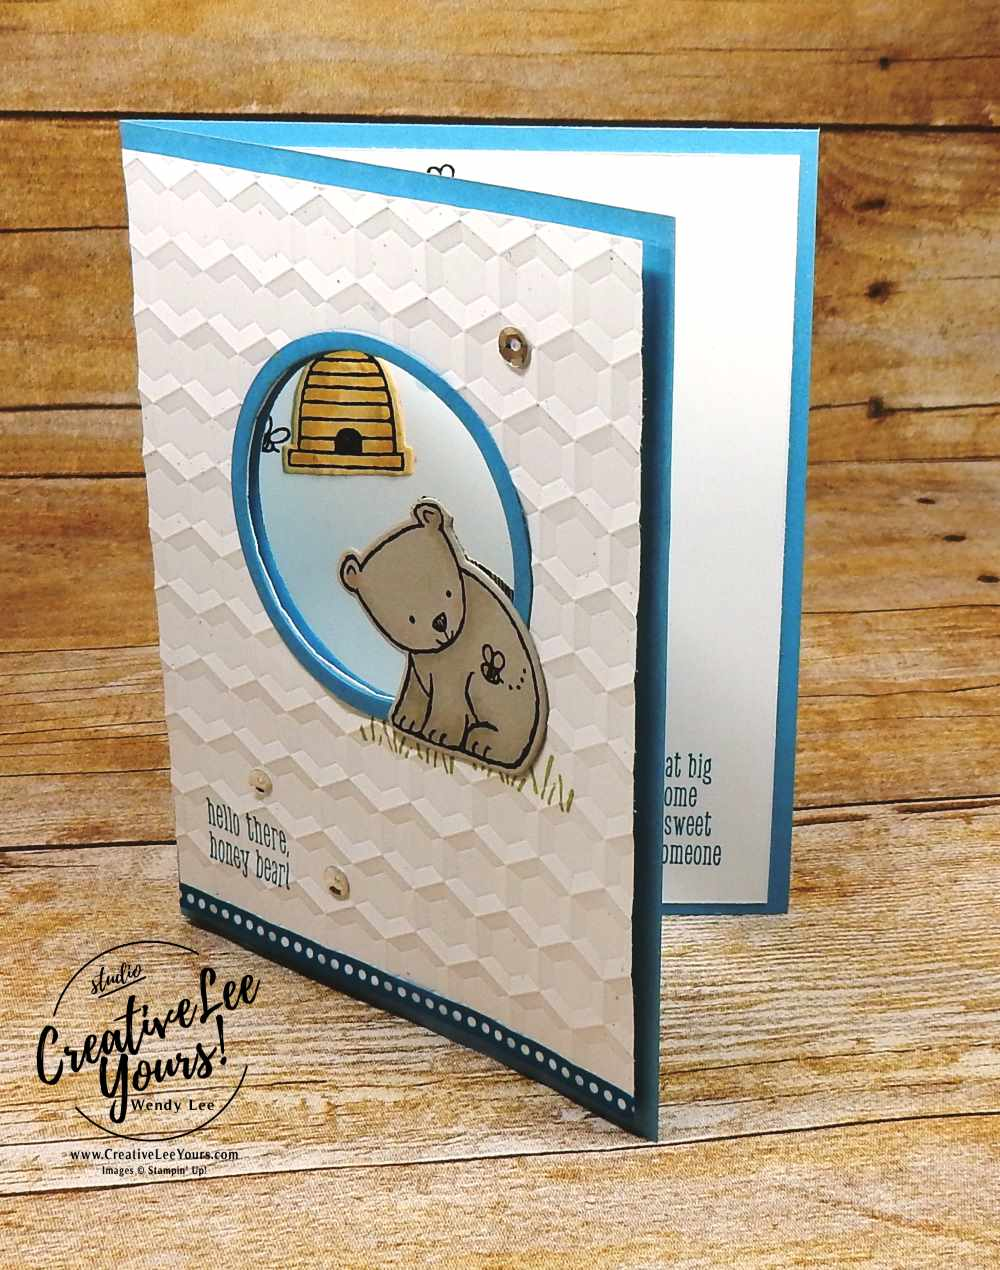 Baby Honey Bear by wendy lee, stampin Up,stamping rubber stamps, a little wild stamp set, colorful seasons stamp set, little loves stamp set,, handmade baby card,August 2017 FMN class